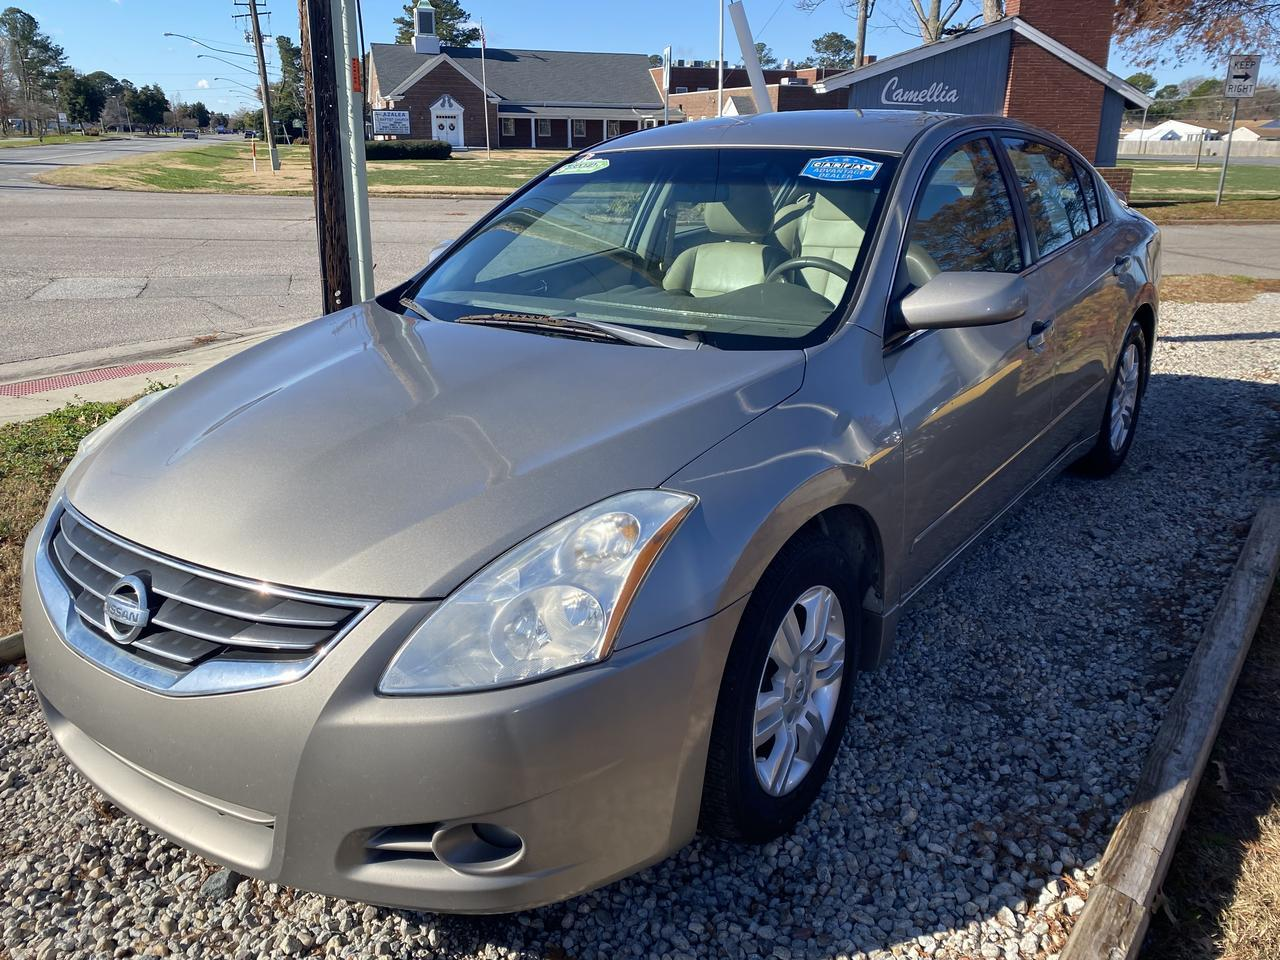 2011 NISSAN ALTIMA S, WHOLESALE TO THE PUBLIC, LEATHER, AUX/USB PORT, KEYLESS START, CLEAN CARFAX! Norfolk VA